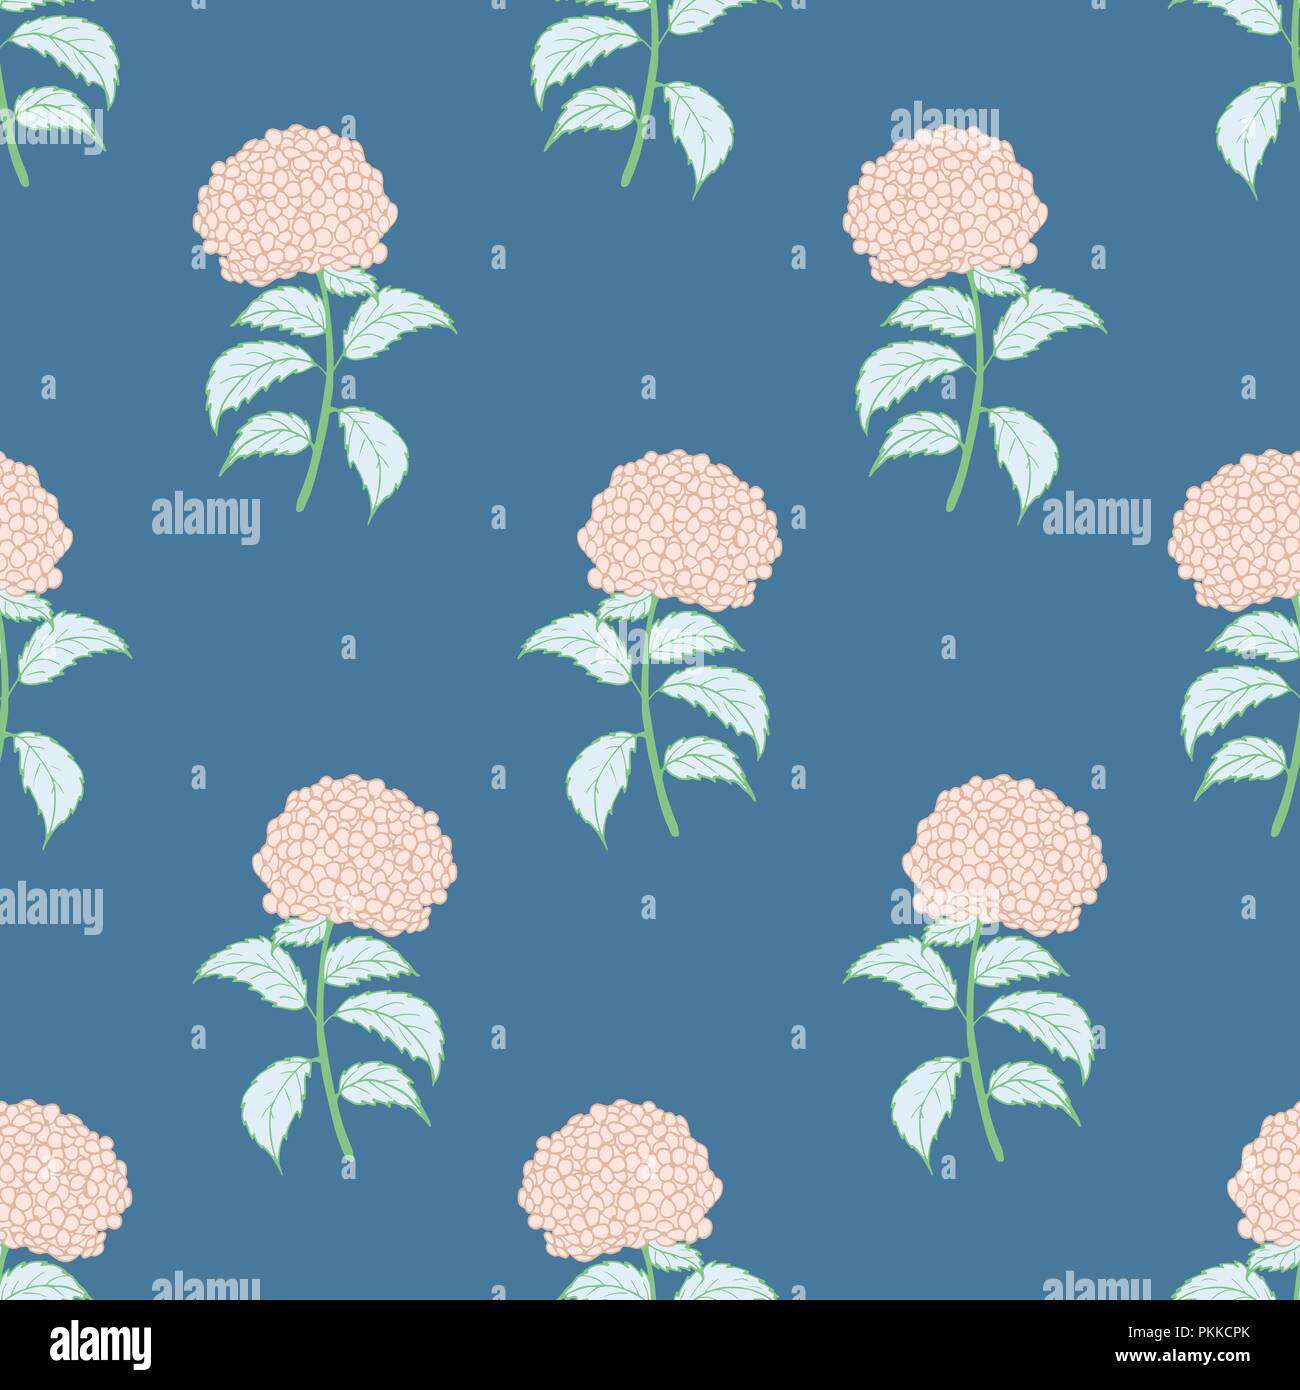 Bright flower seamless pattern with pink hydrangeas. - Stock Vector